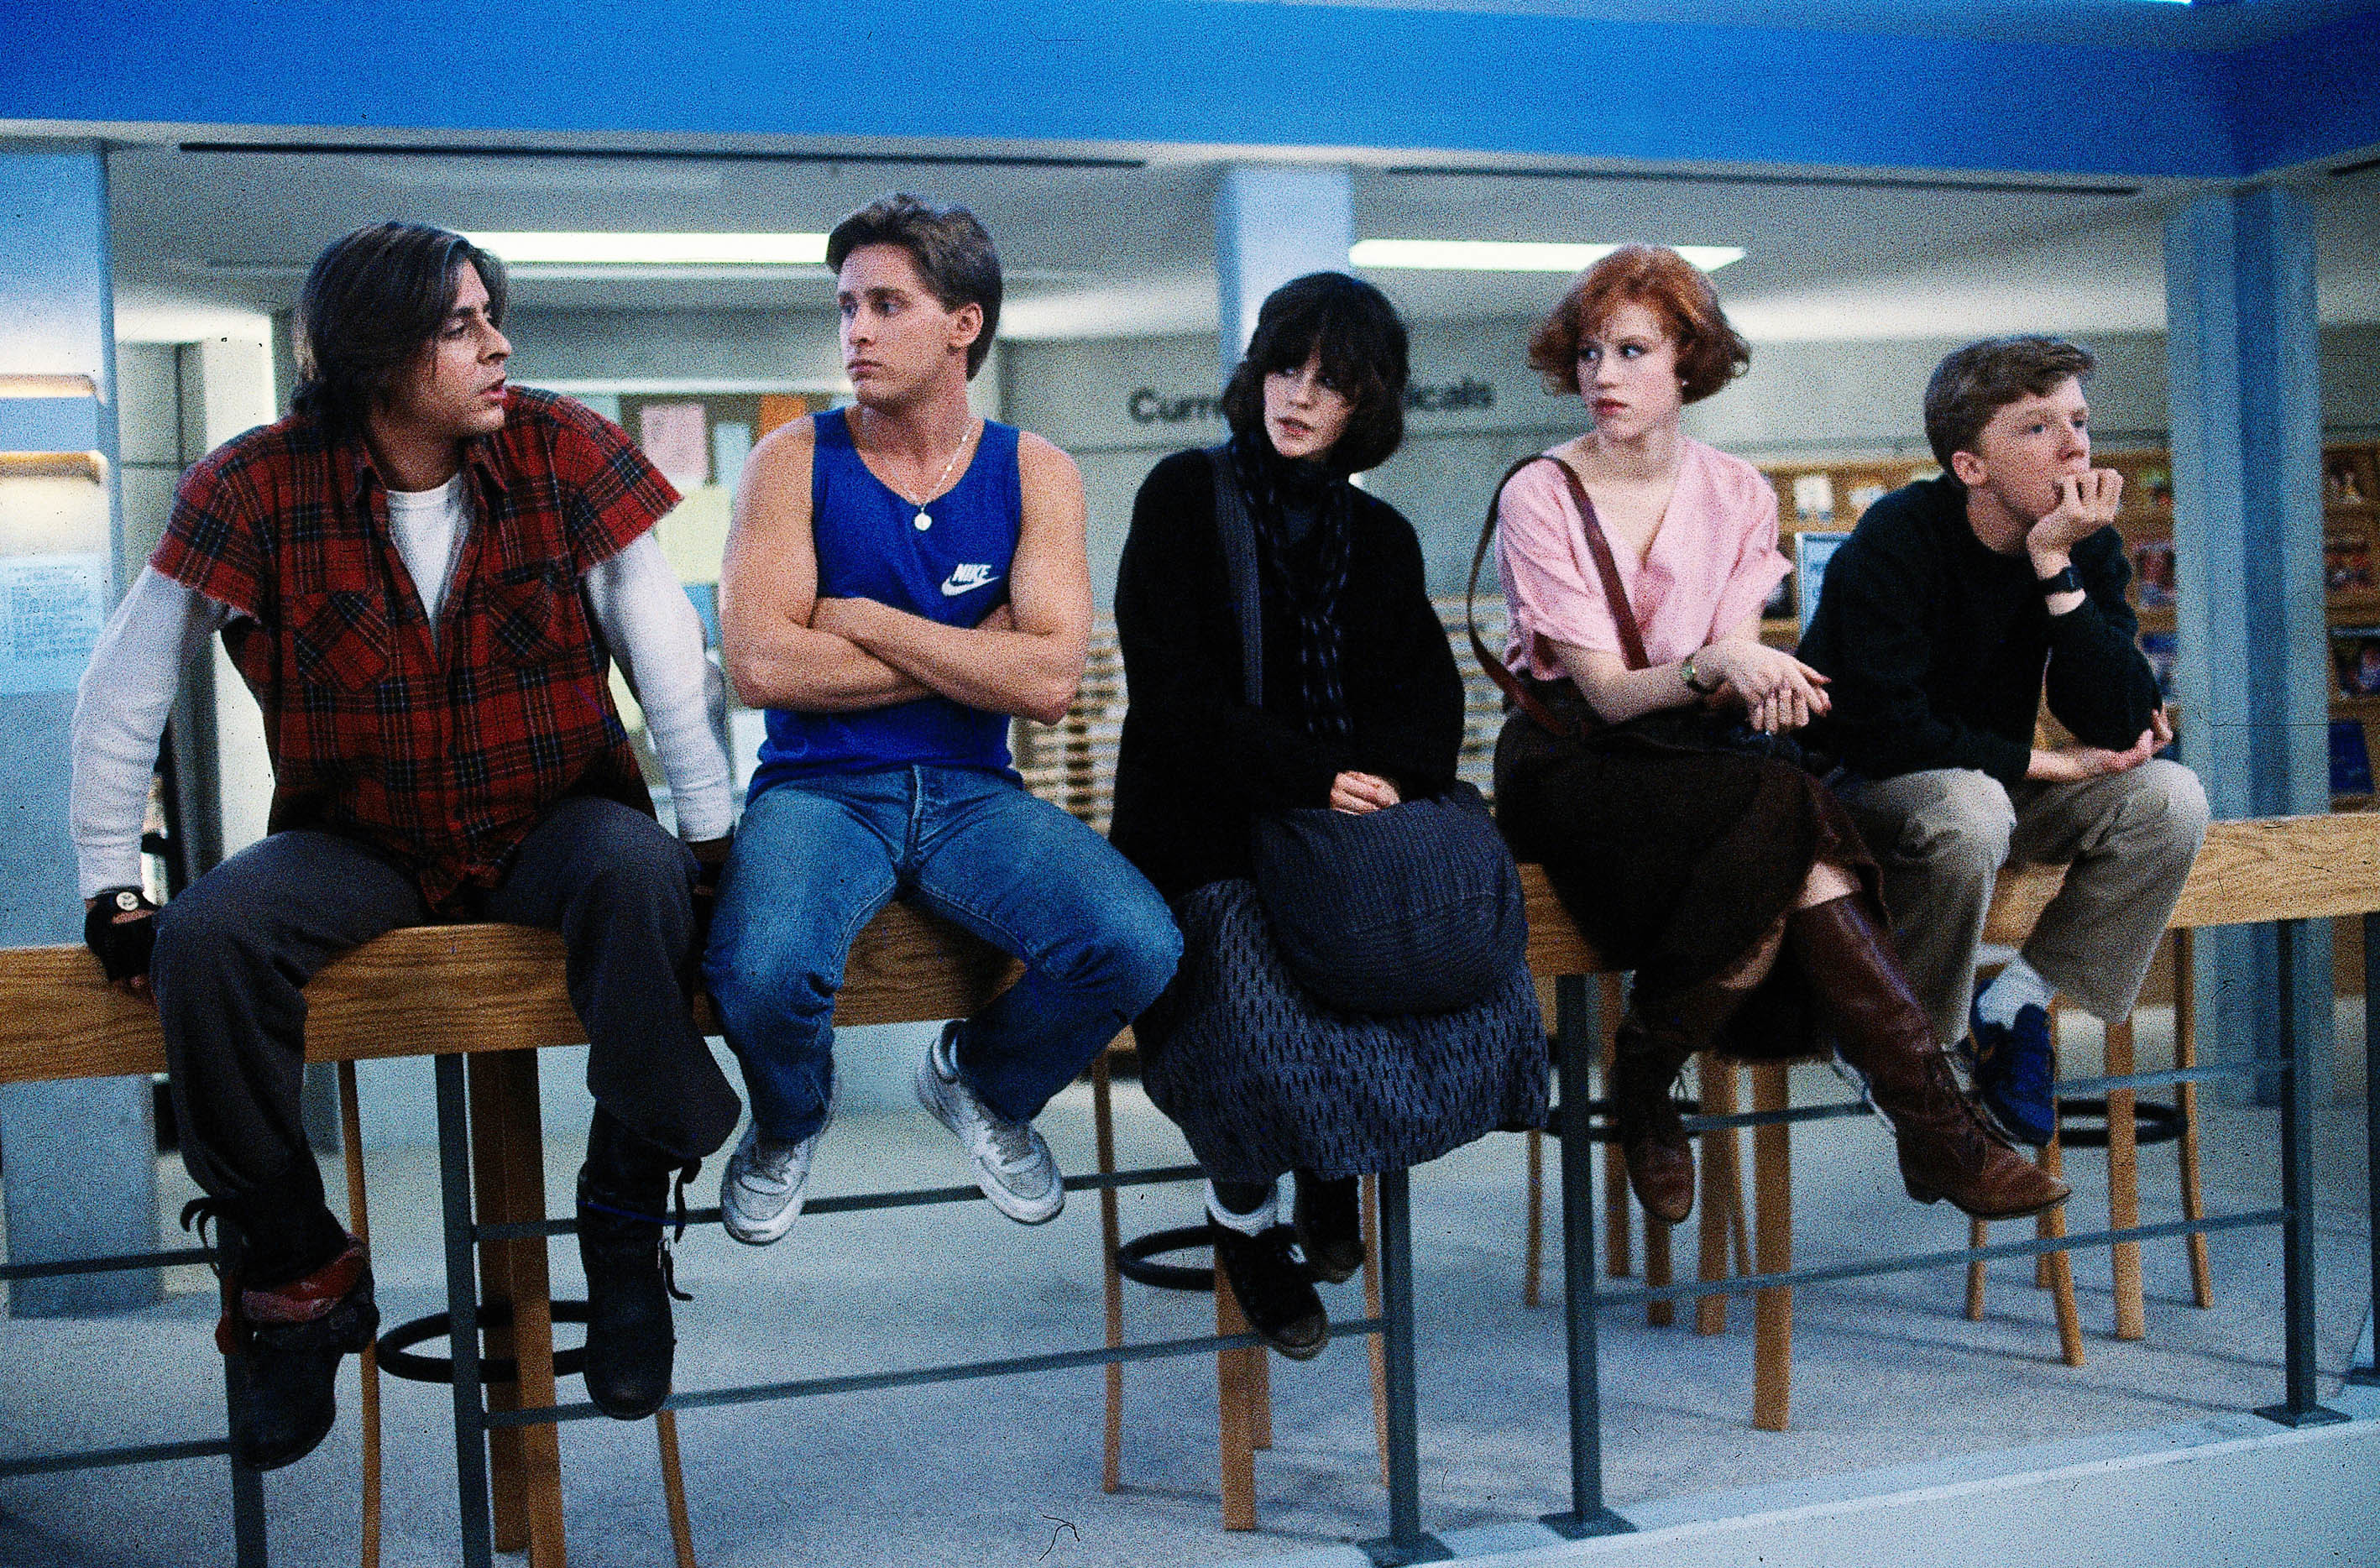 The Breakfast Club will return to theaters (too briefly!)